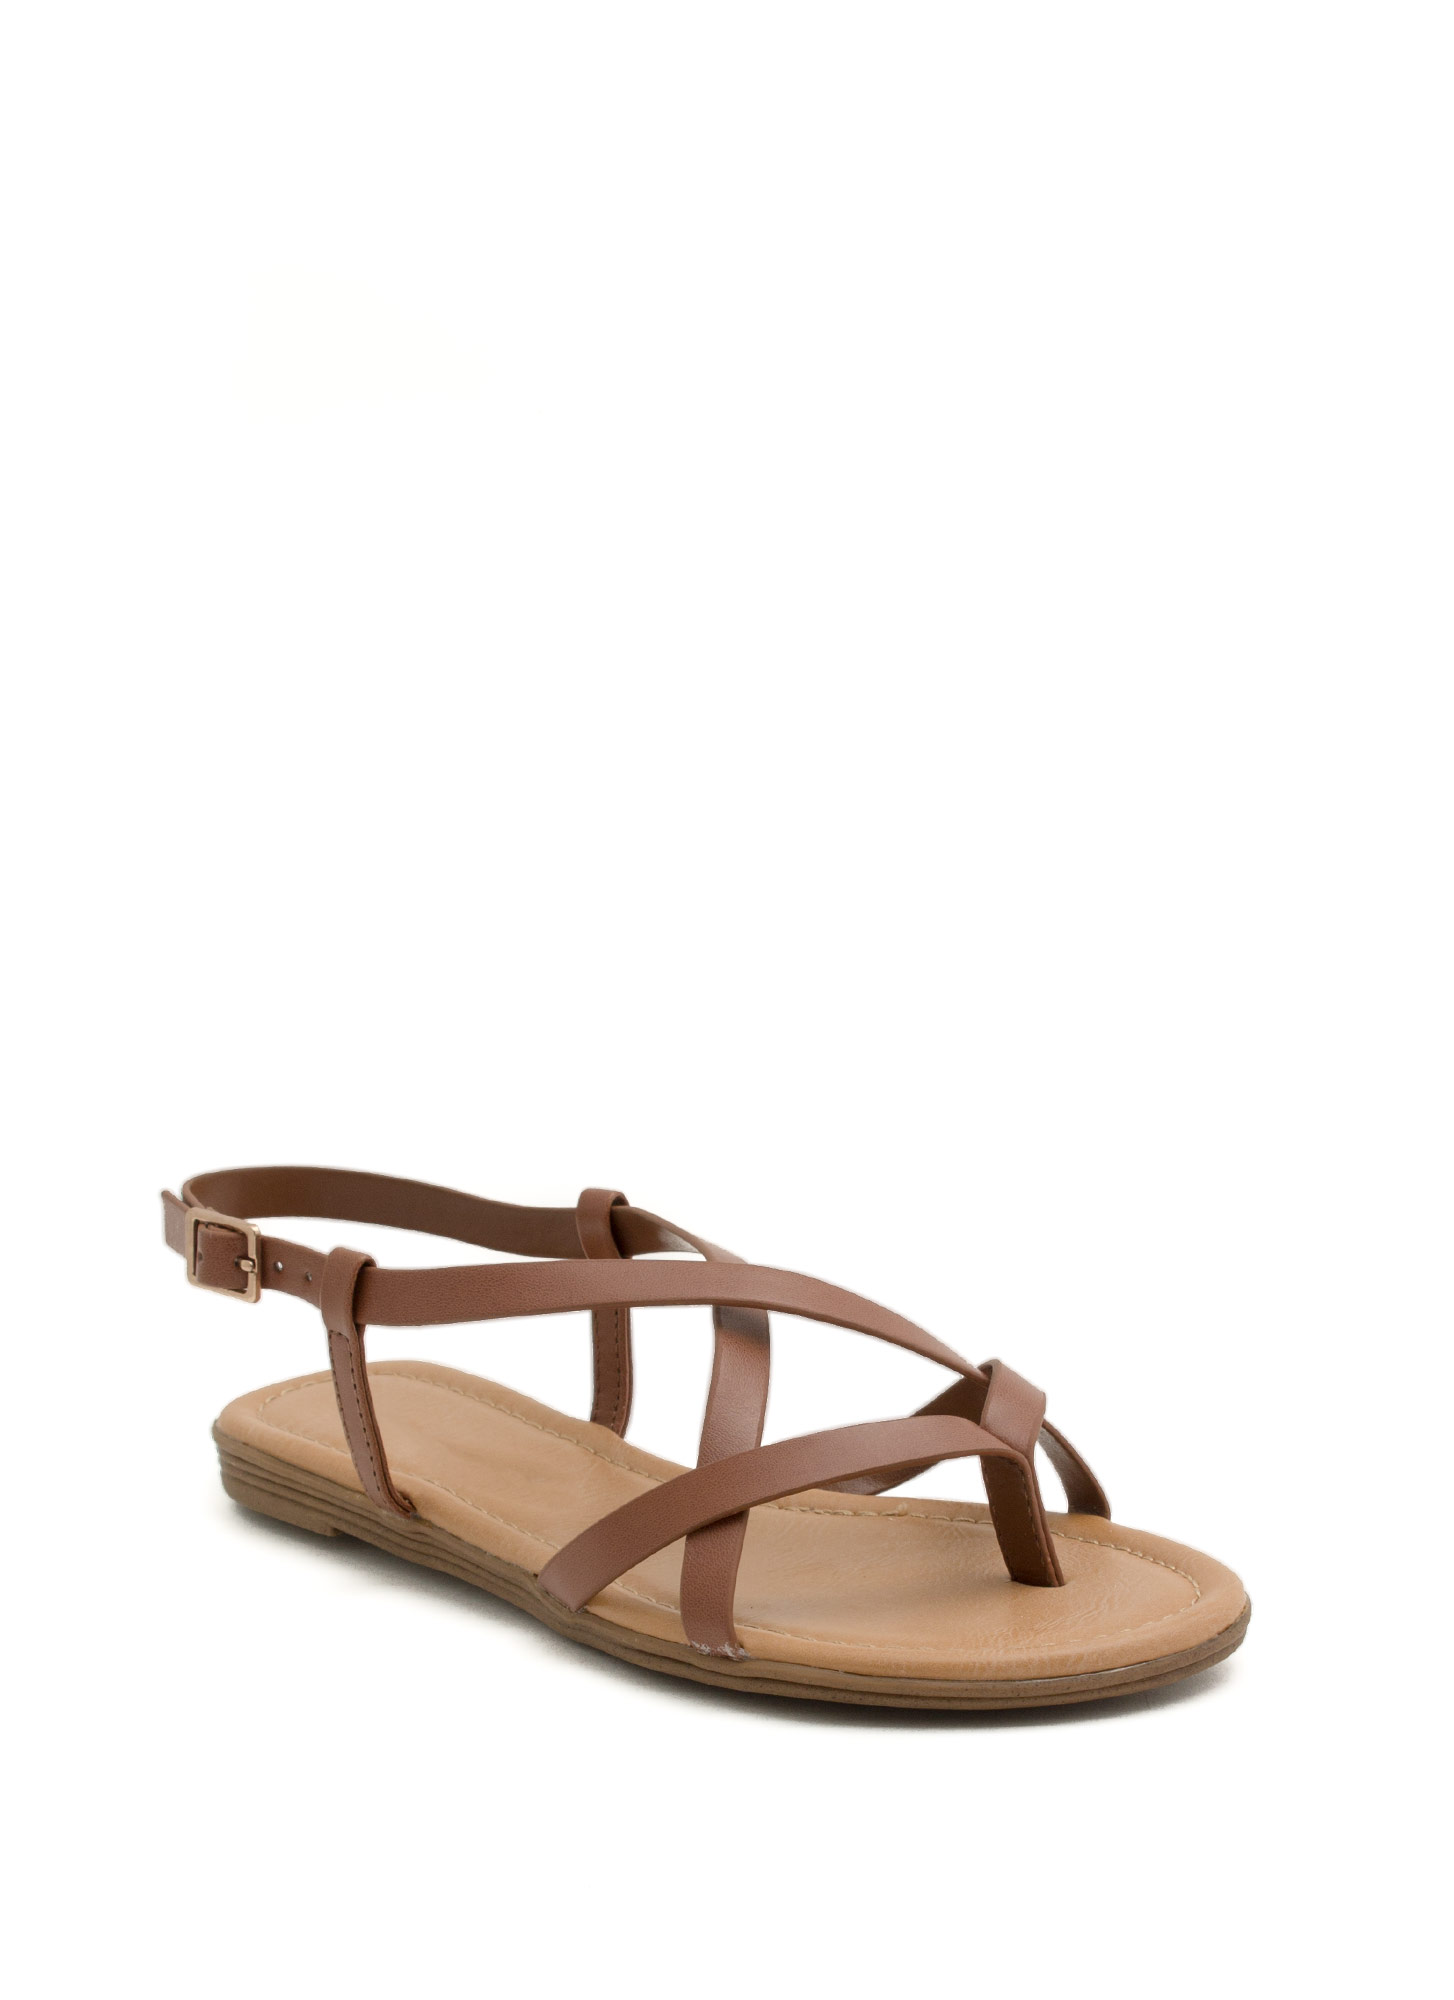 Summertime Radness Strappy Sandals DKTAN